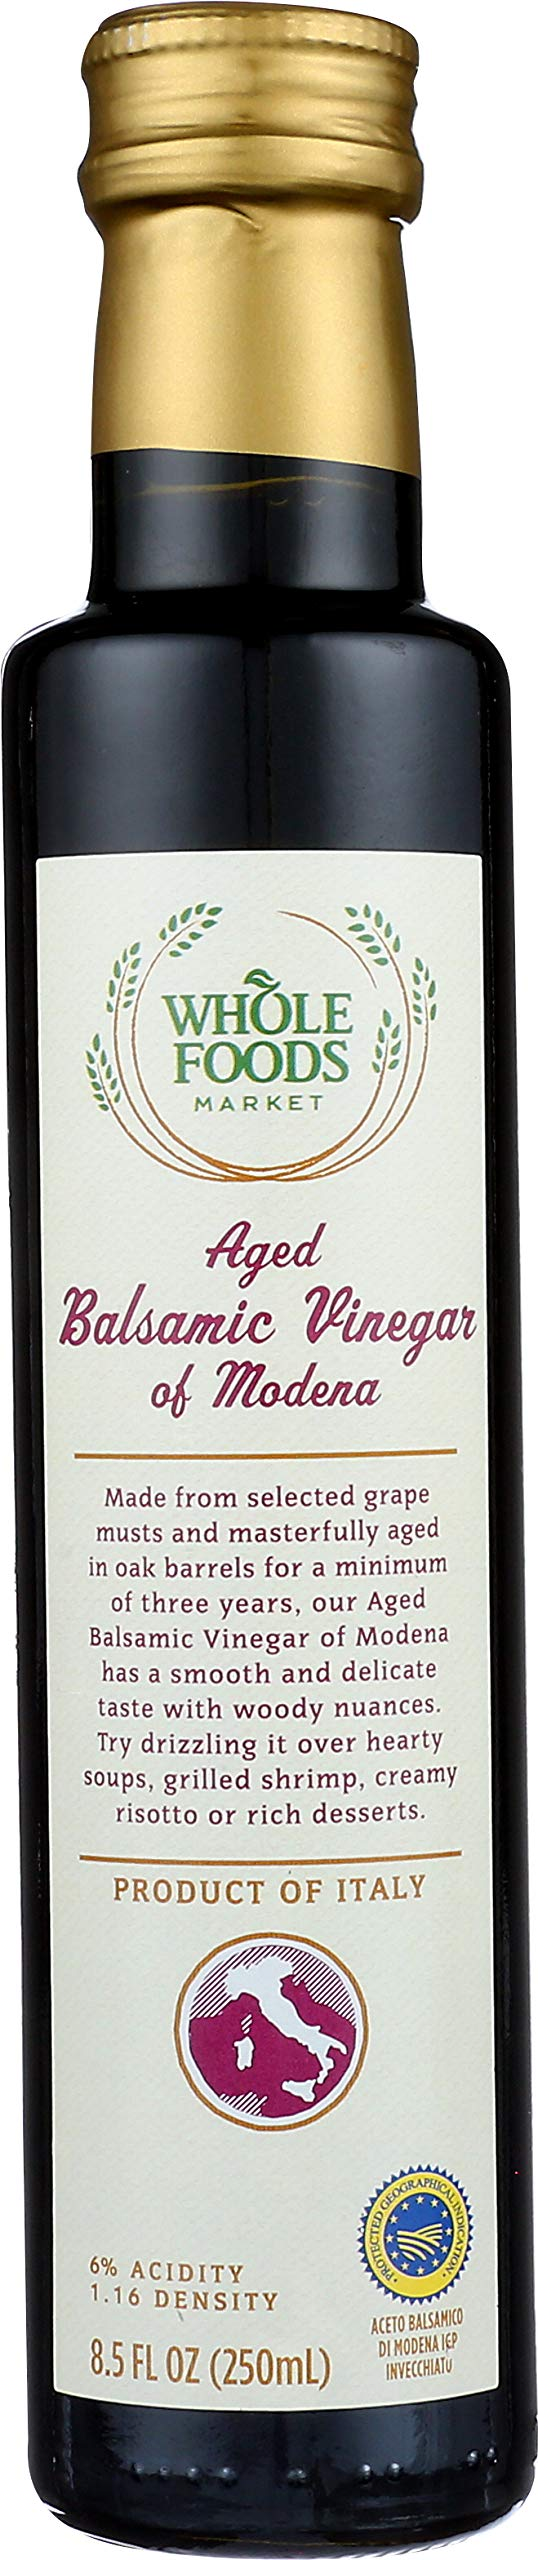 365 Everyday Value, Aged Balsamic Vinegar of Modena, 8.5 oz